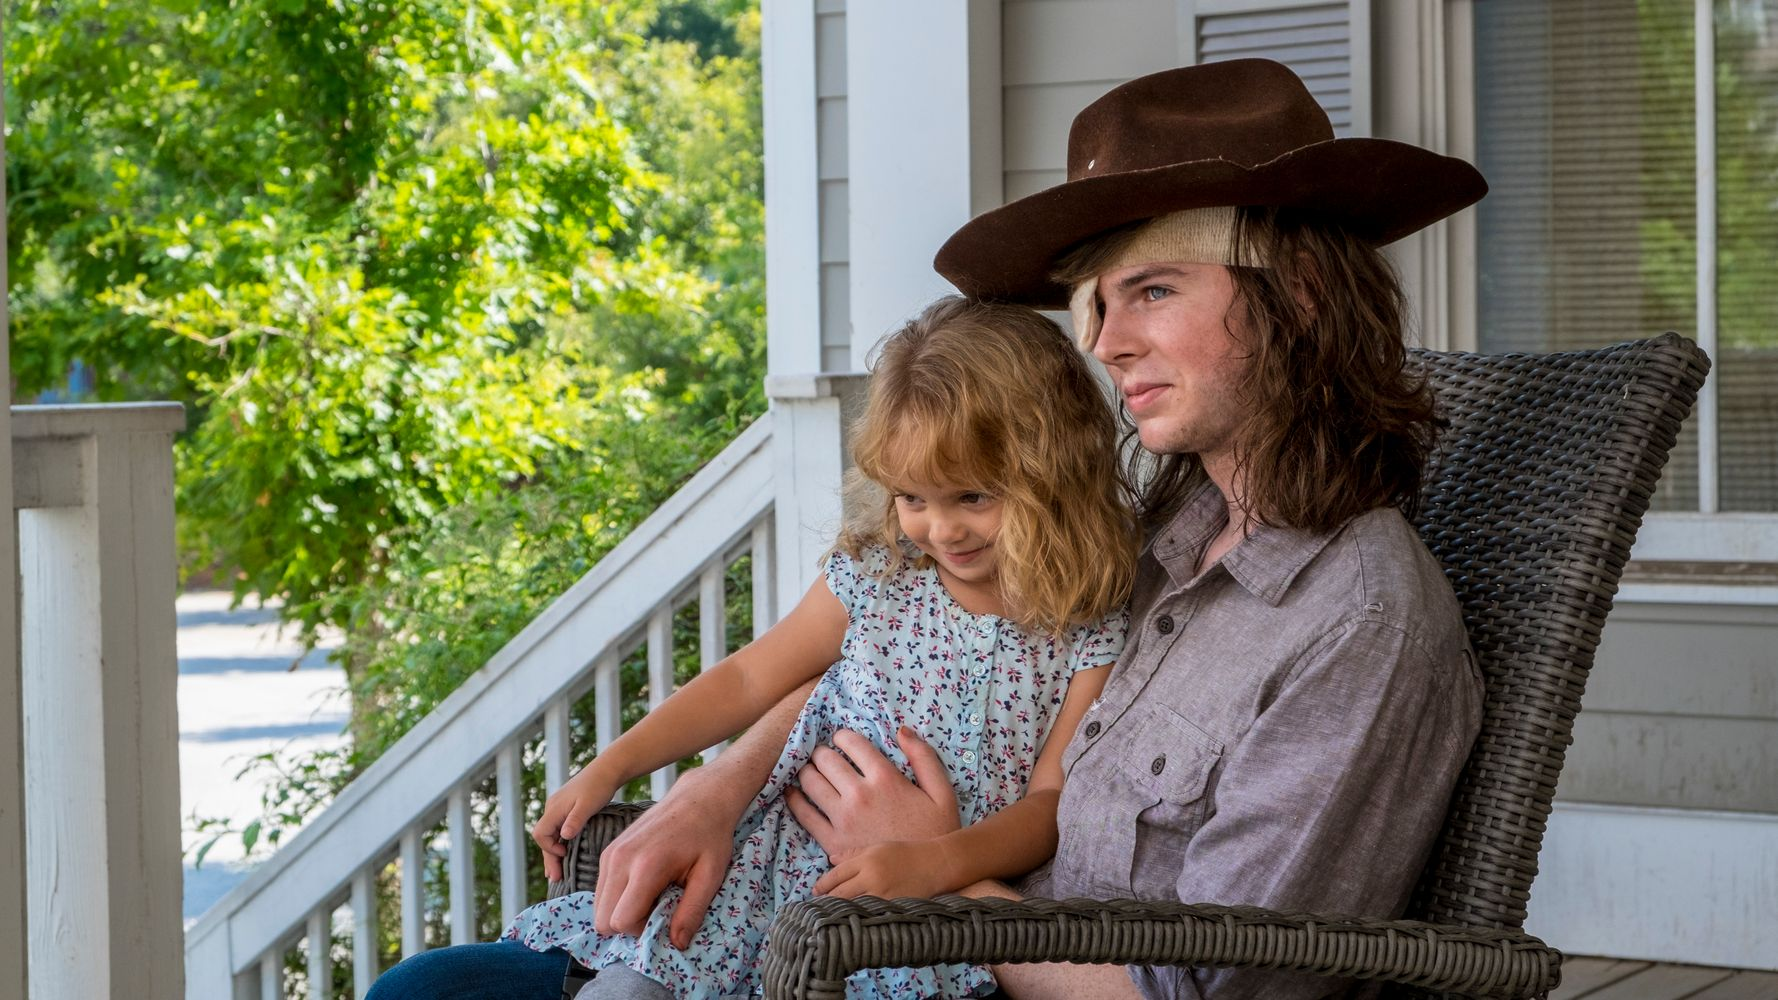 There's A Sad Callback Coming On 'The Walking Dead'   HuffPost